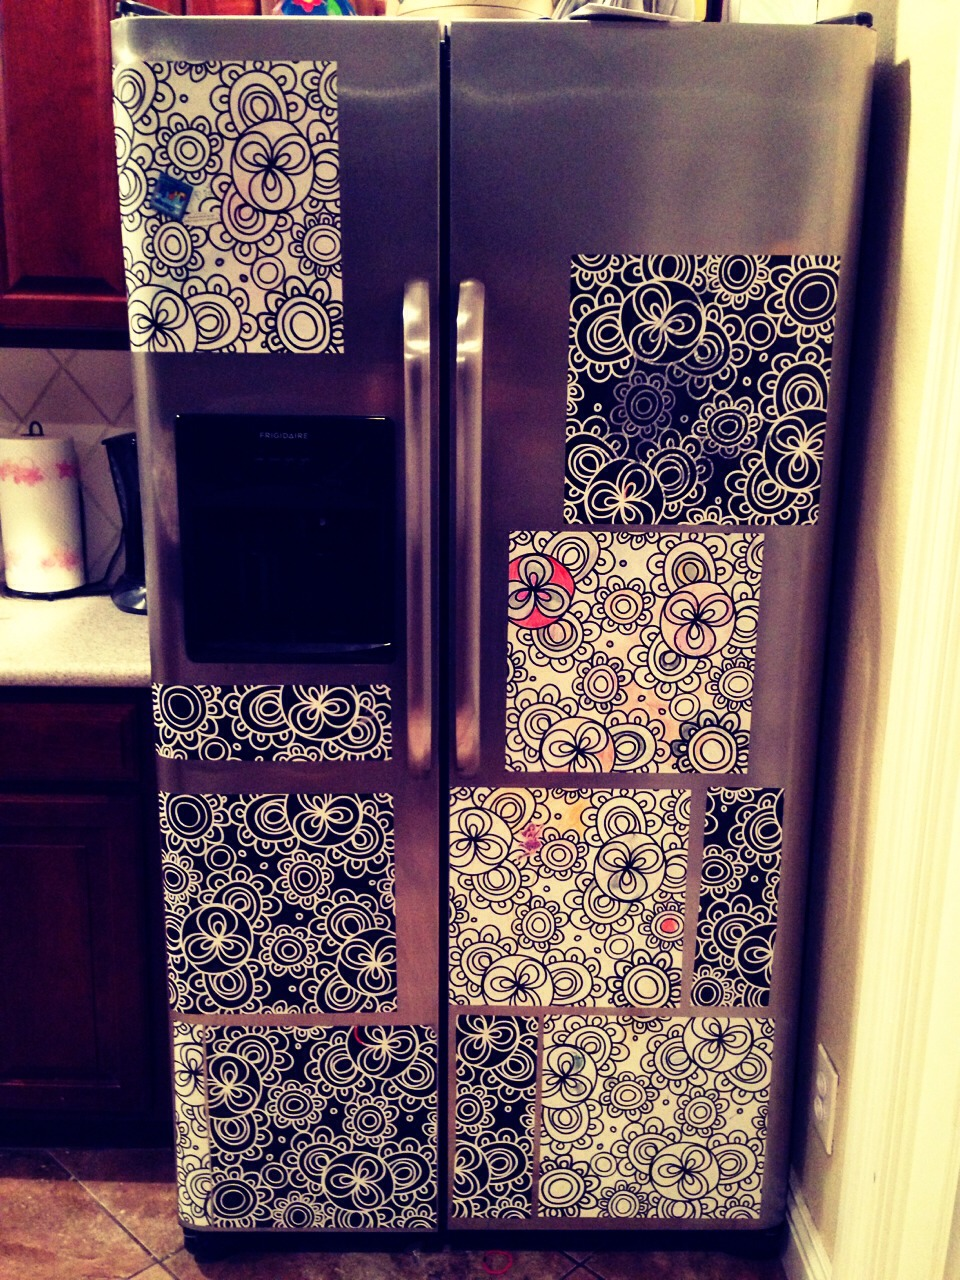 Plain refrigerator can become decor for your kitchen and also entertainment for little ones.  Wall Pops Wall Art can be a good way to hide the old boring fridge and the sticky fingers of little ones. Use washable markers to color over and over again by washing the marker away with a wet paper towel.